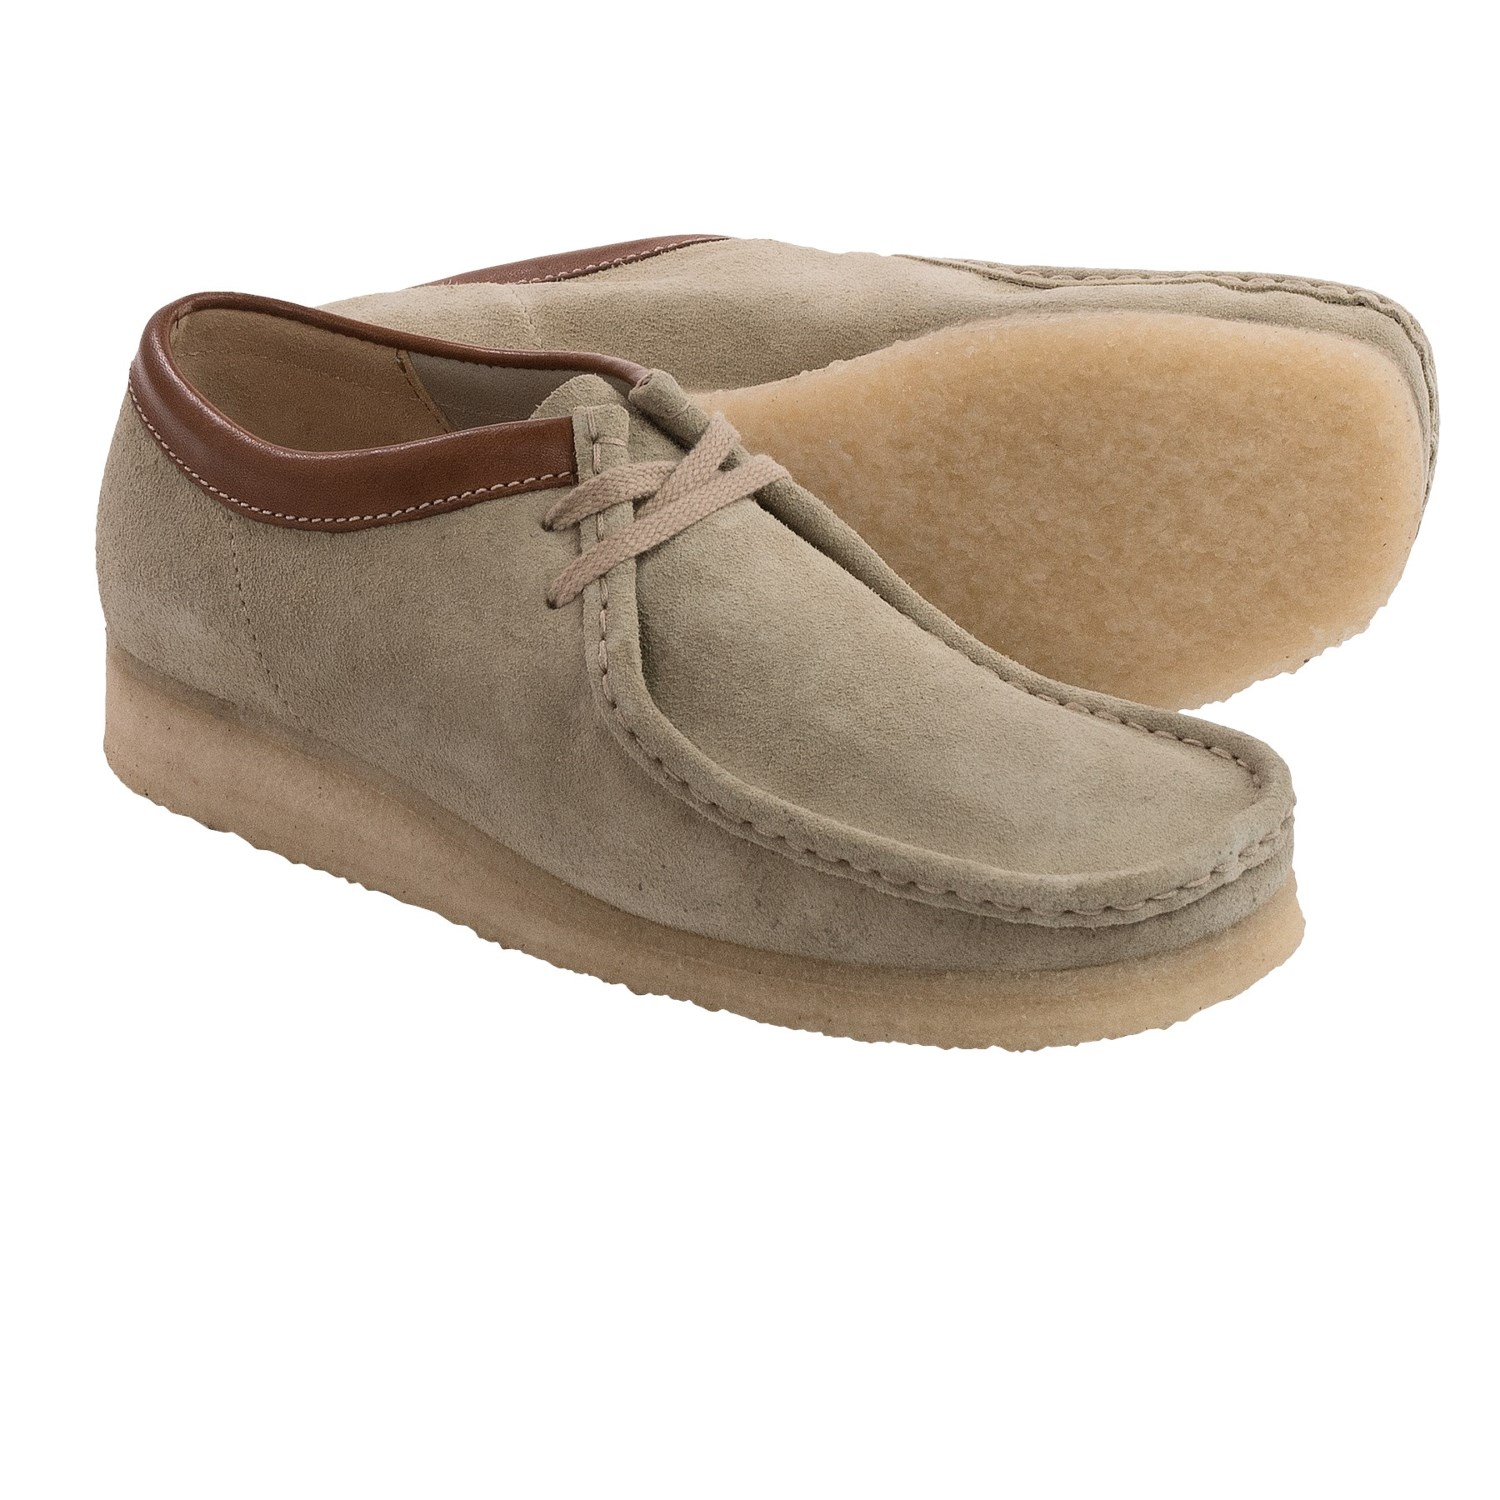 clarks wallabee shoes suede for in sand suede